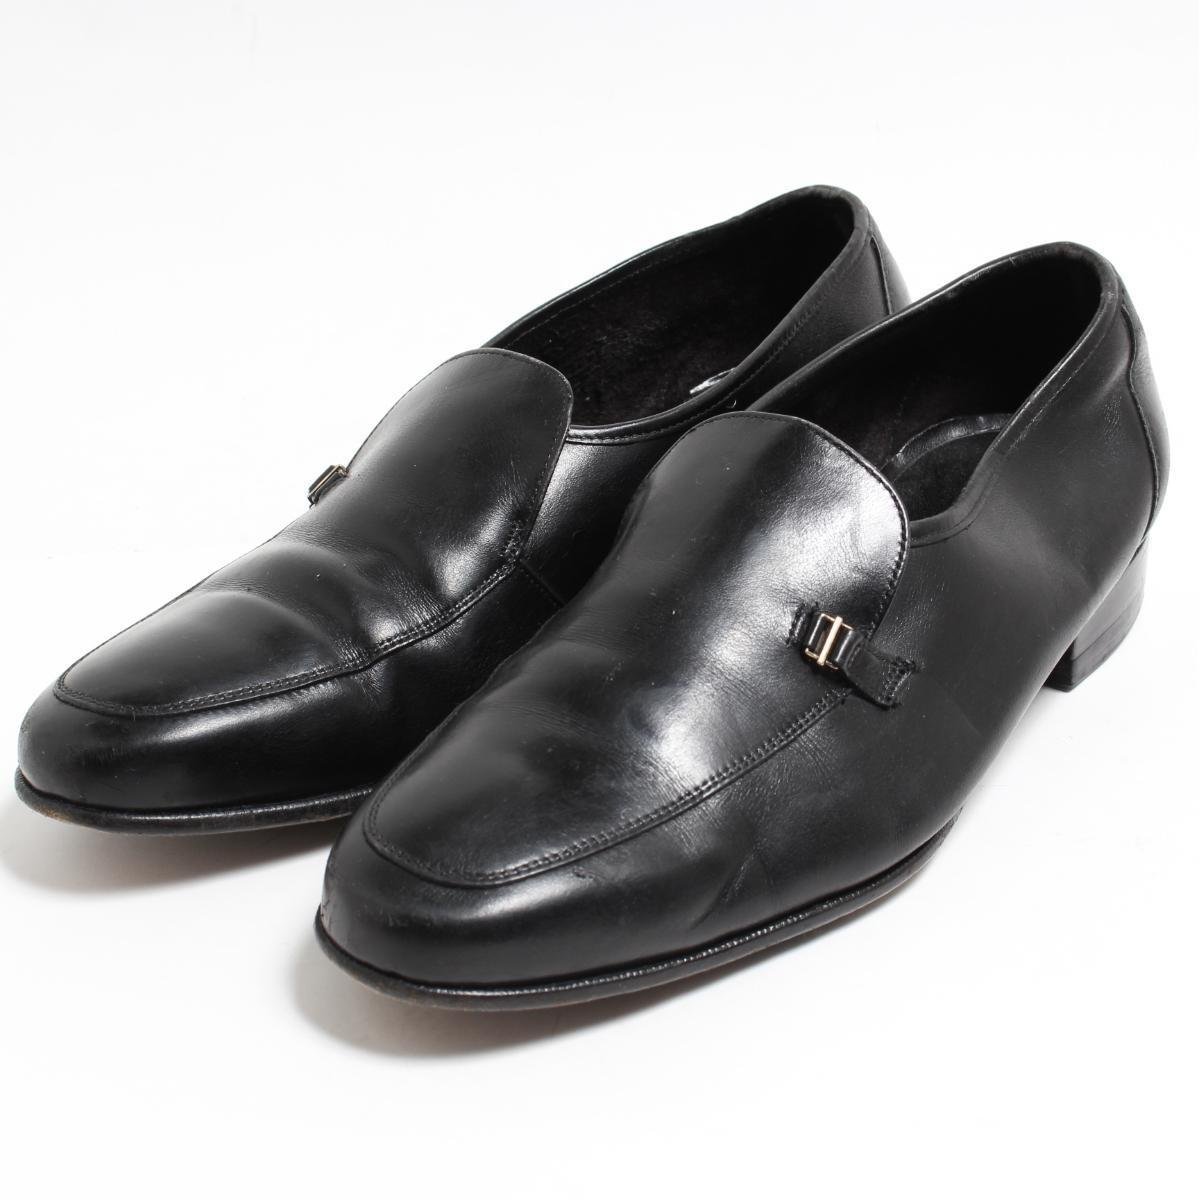 Florsheim Imperial Loafer